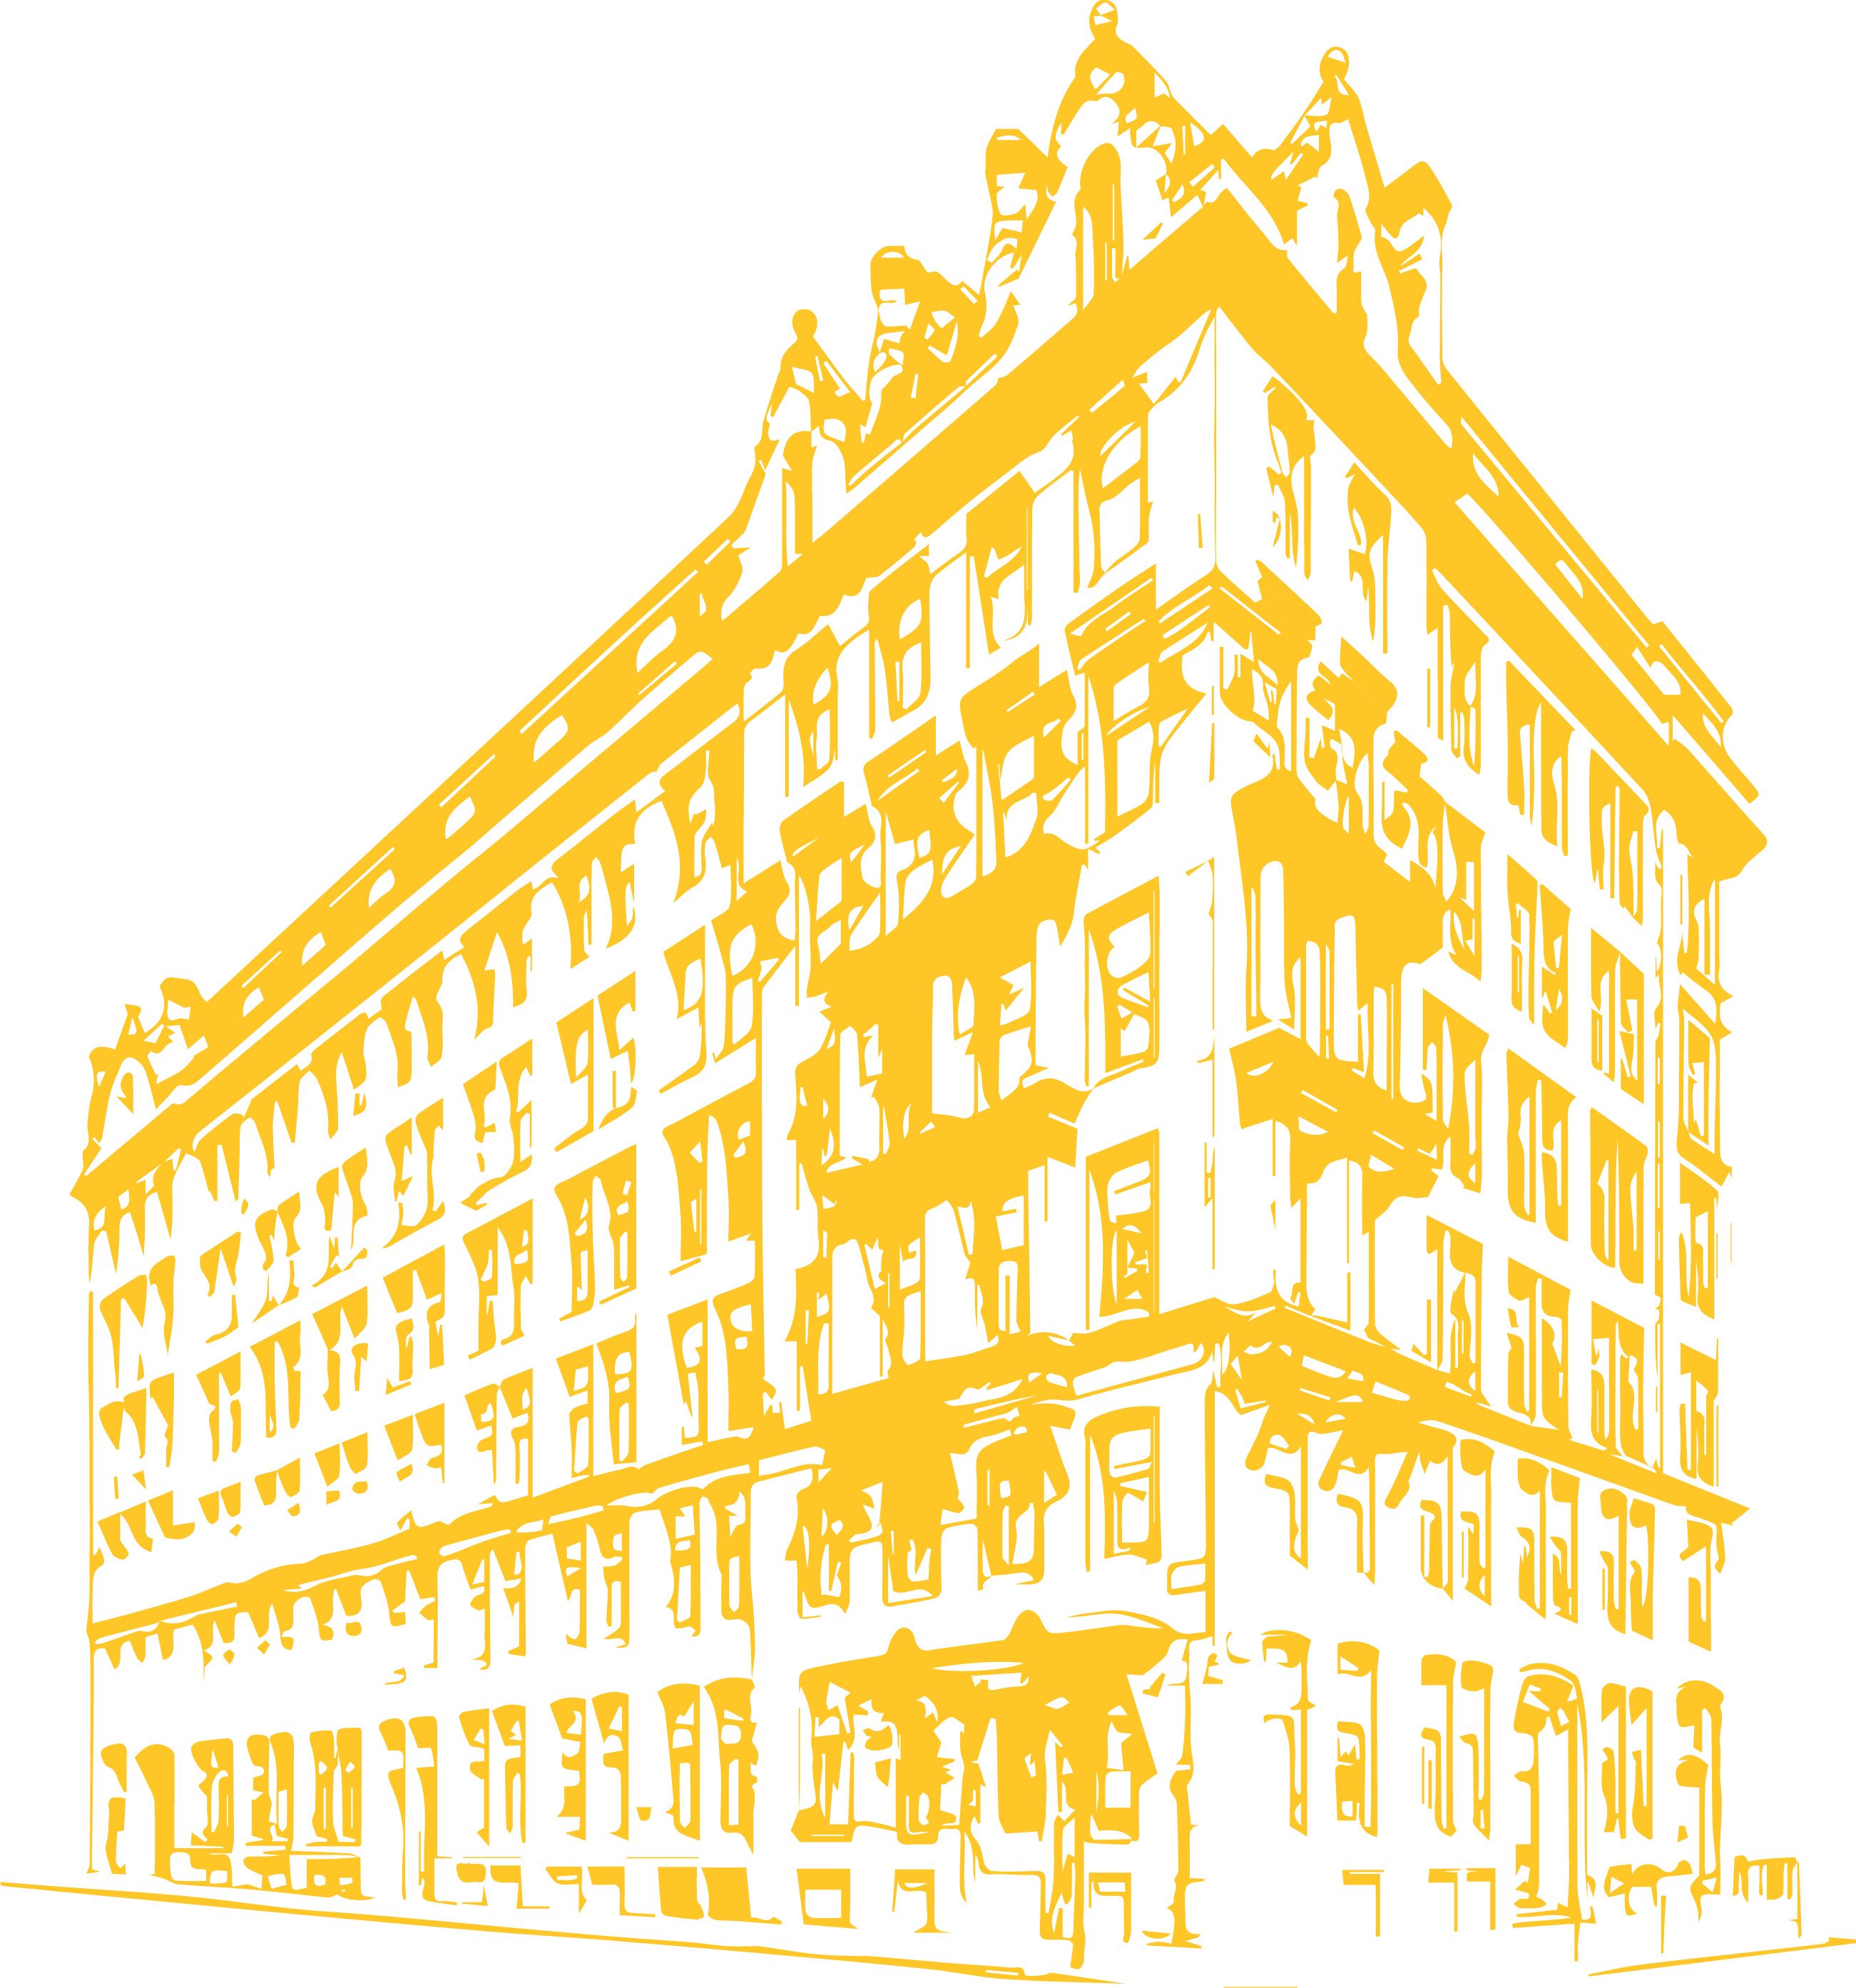 Graphic of building exterior